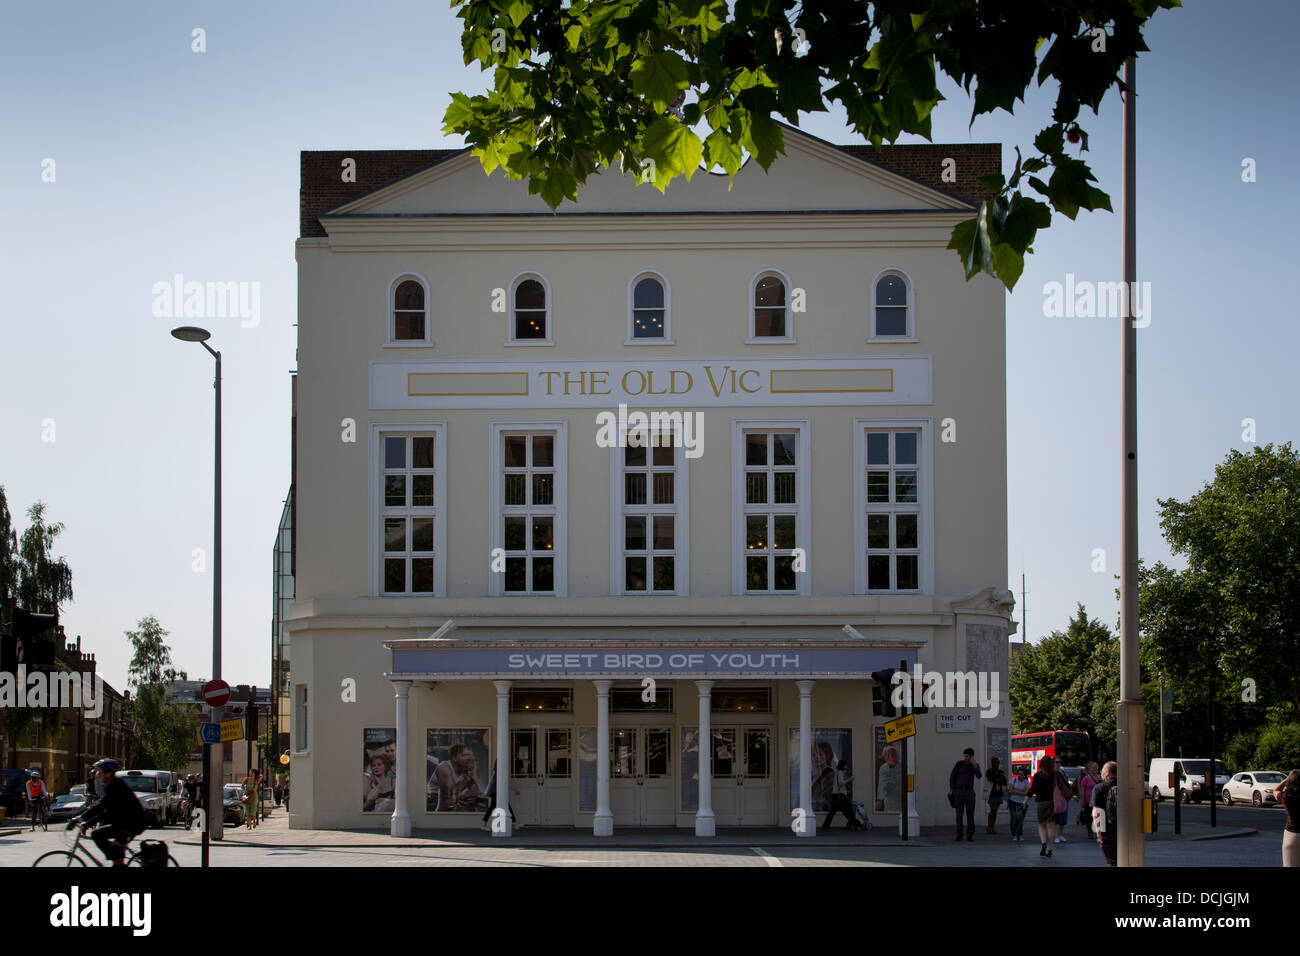 The facade of The Old Vic Theatre in London. - Stock Image